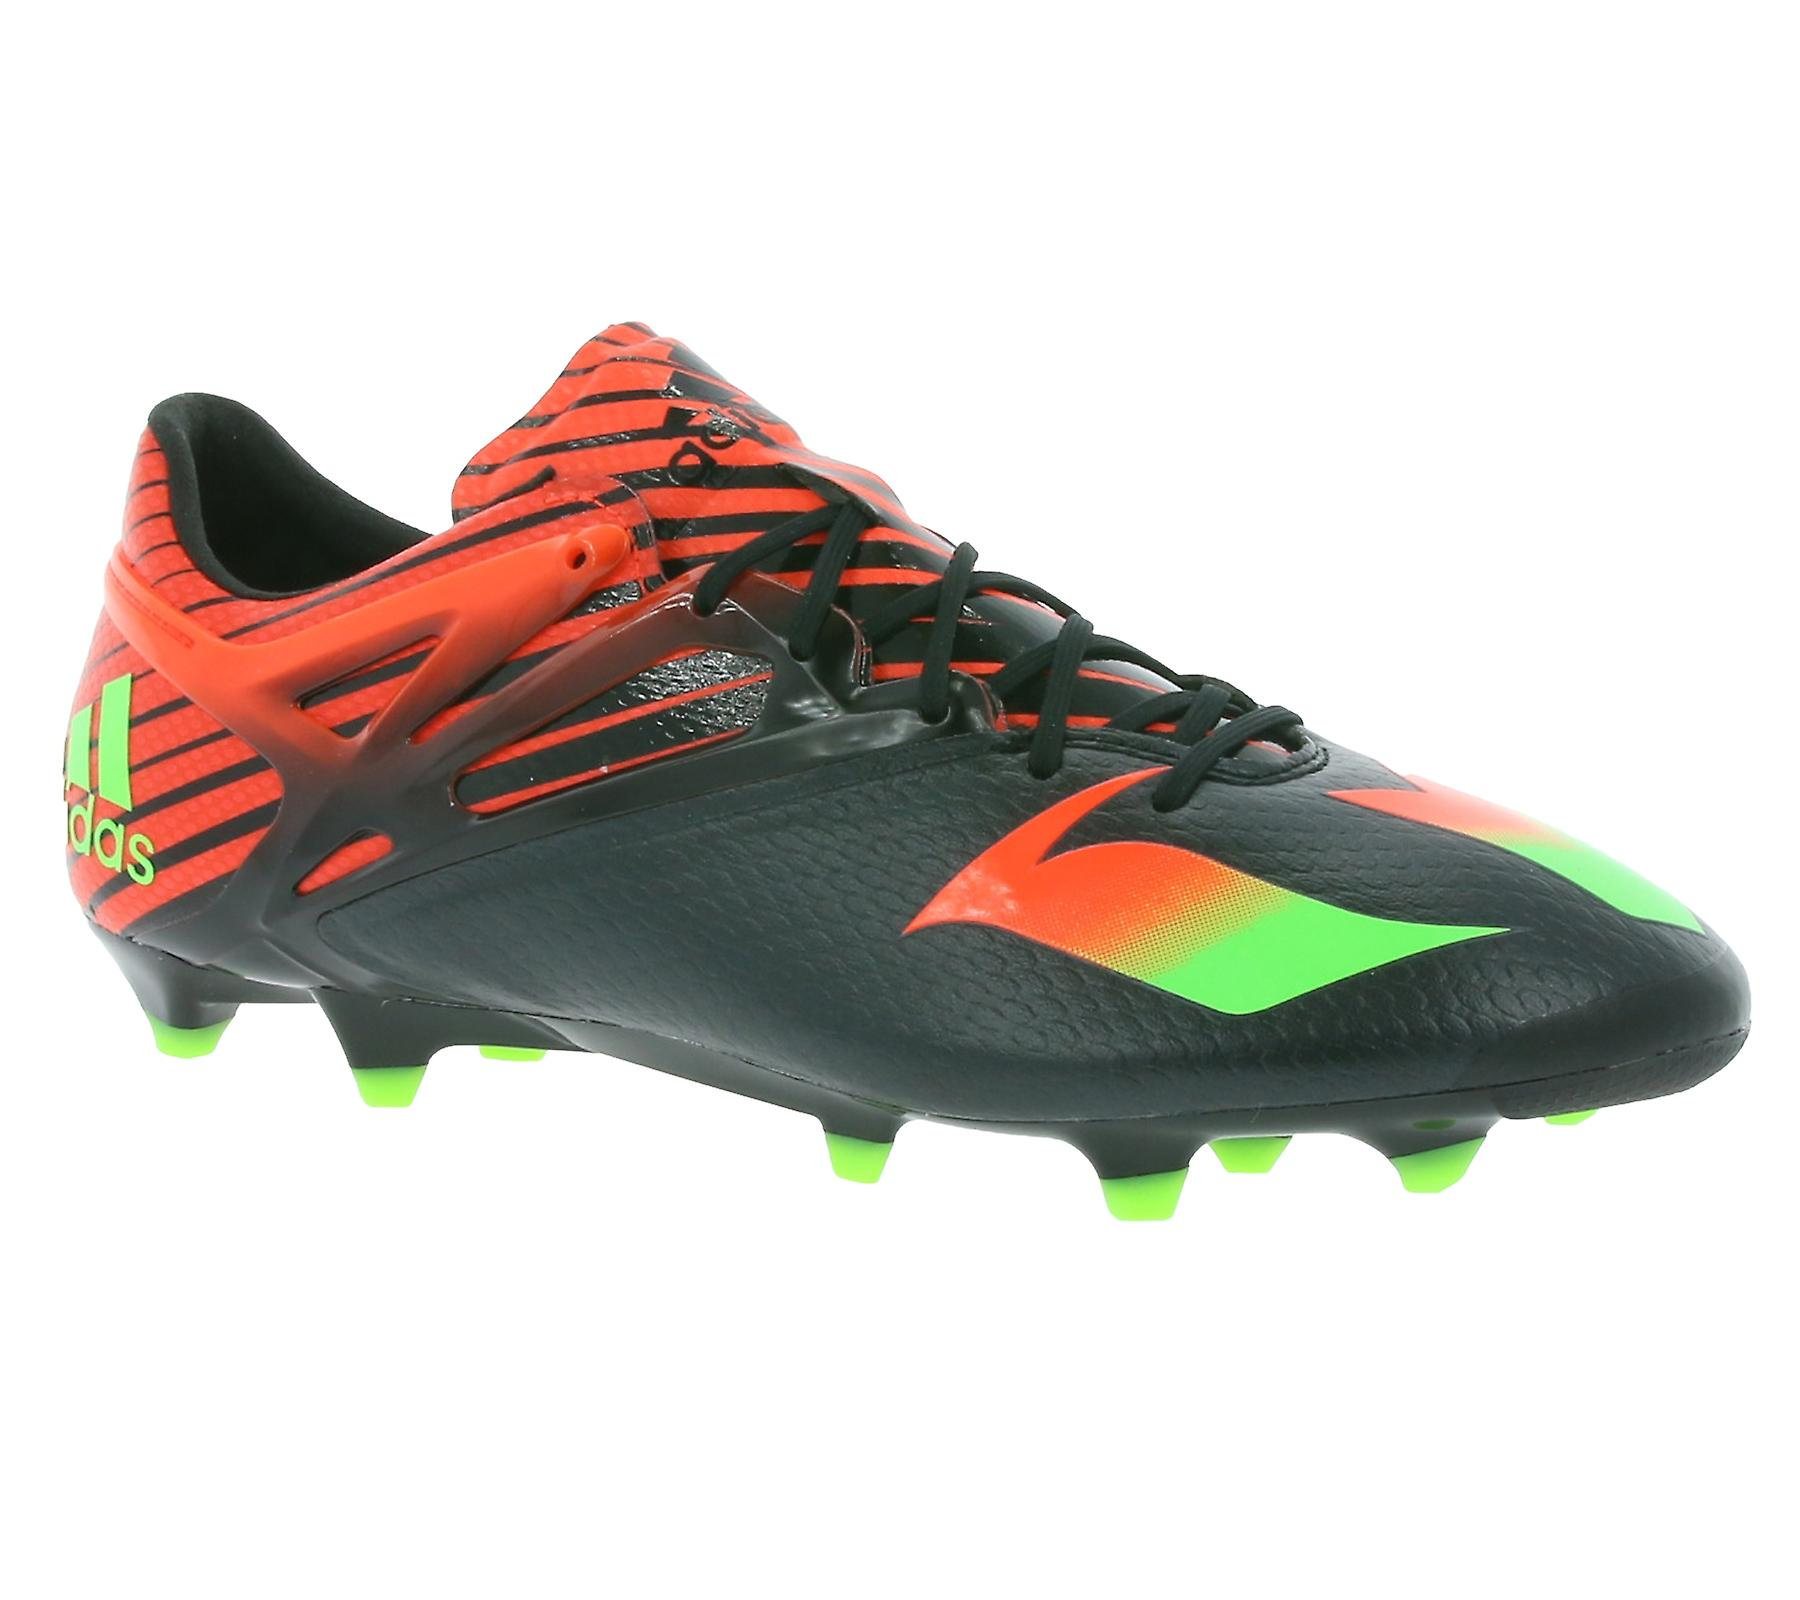 e9b0fd0152b adidas performance Messi 15.1 FG AG mens football boots black